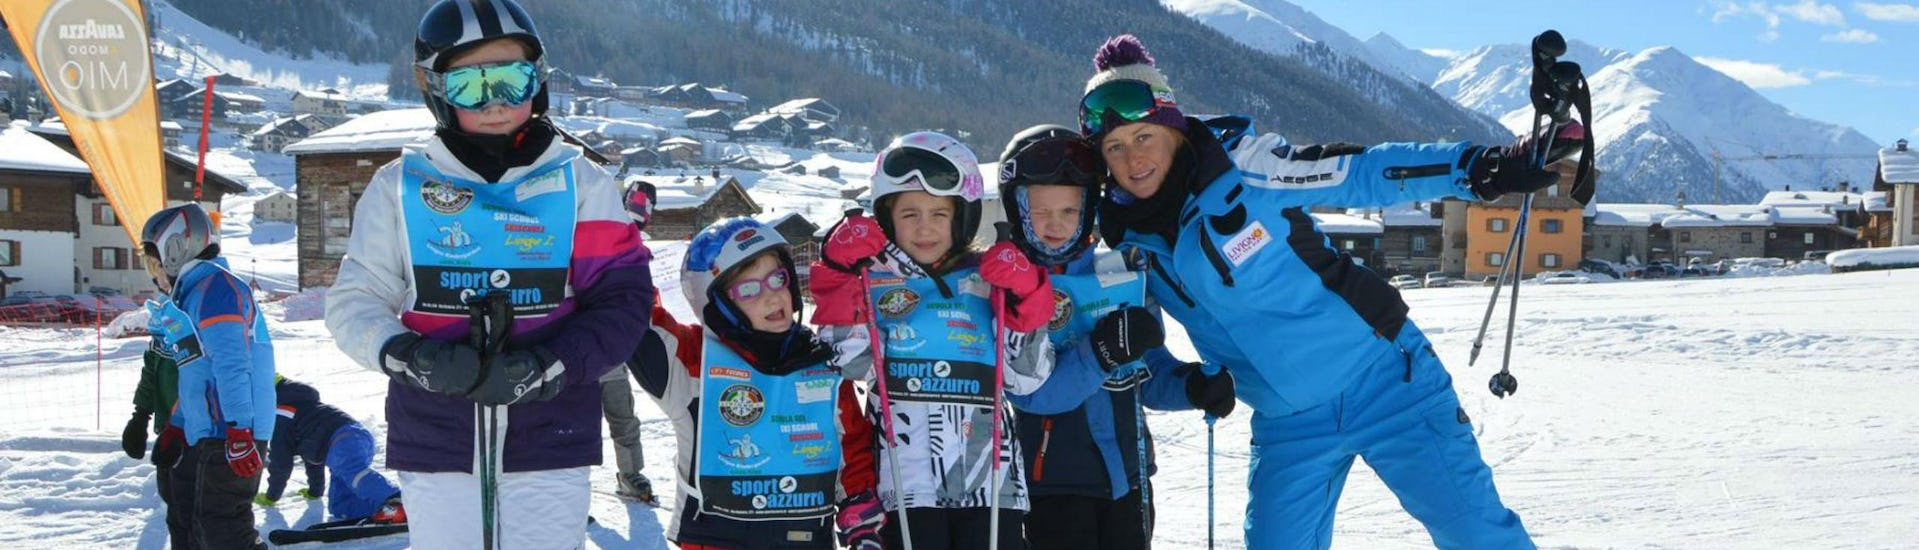 A group of children is enjoying their Kids Ski Lessons (5-12 y.) - All Levels together with their instructor from the ski school Scuola di Sci e Snowboard Livigno Italy.